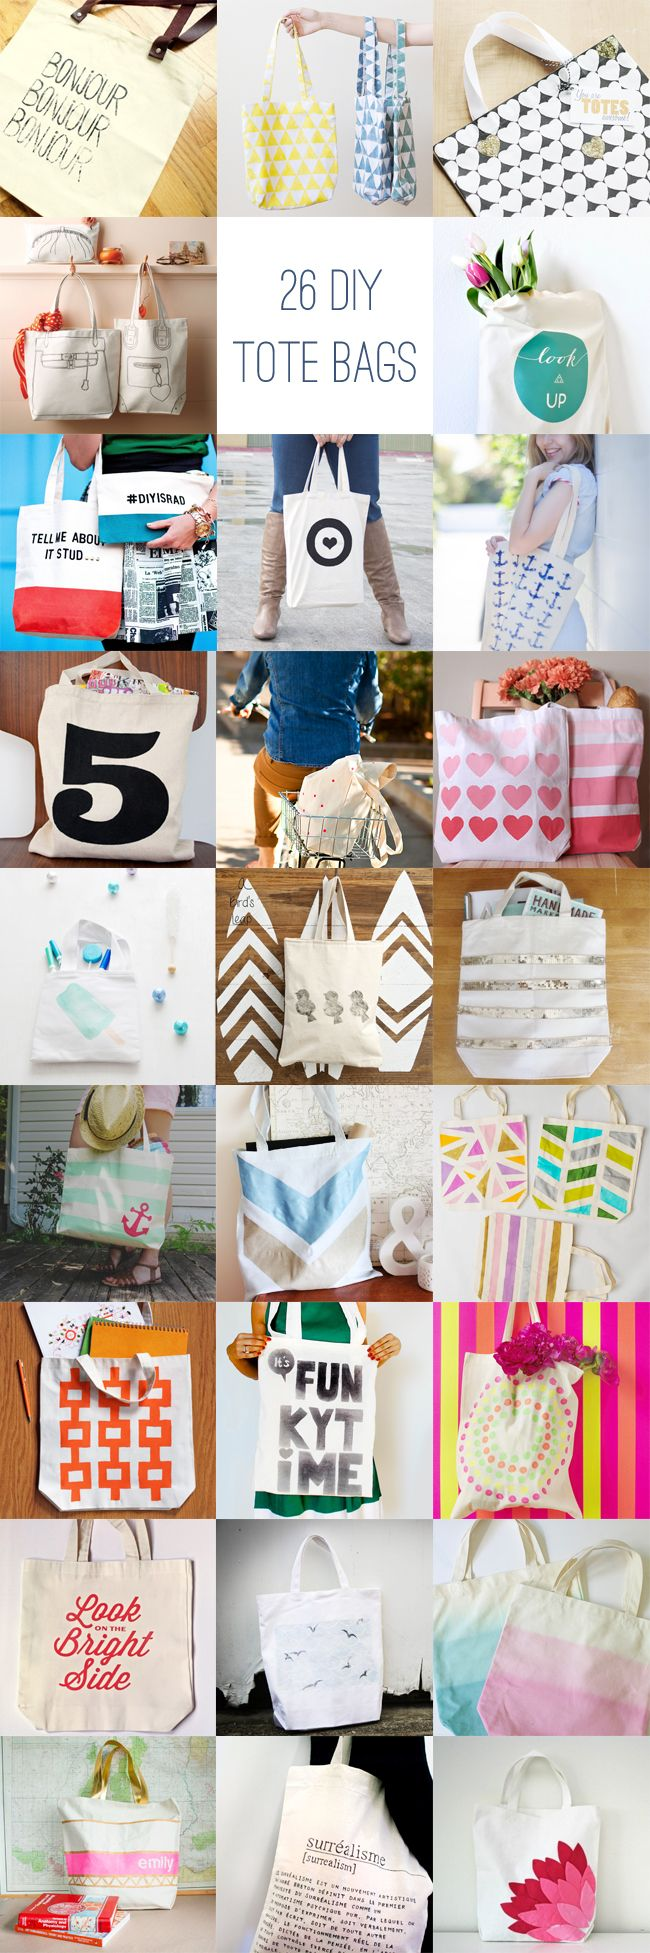 26 DIY Tote Bag Ideas with links to tutorials! This blogger recommends $1.99 Hobby Lobby bags. Cute, inexpensive and easy for little gifts/ gift bags/ reuse able grocery bags etc.